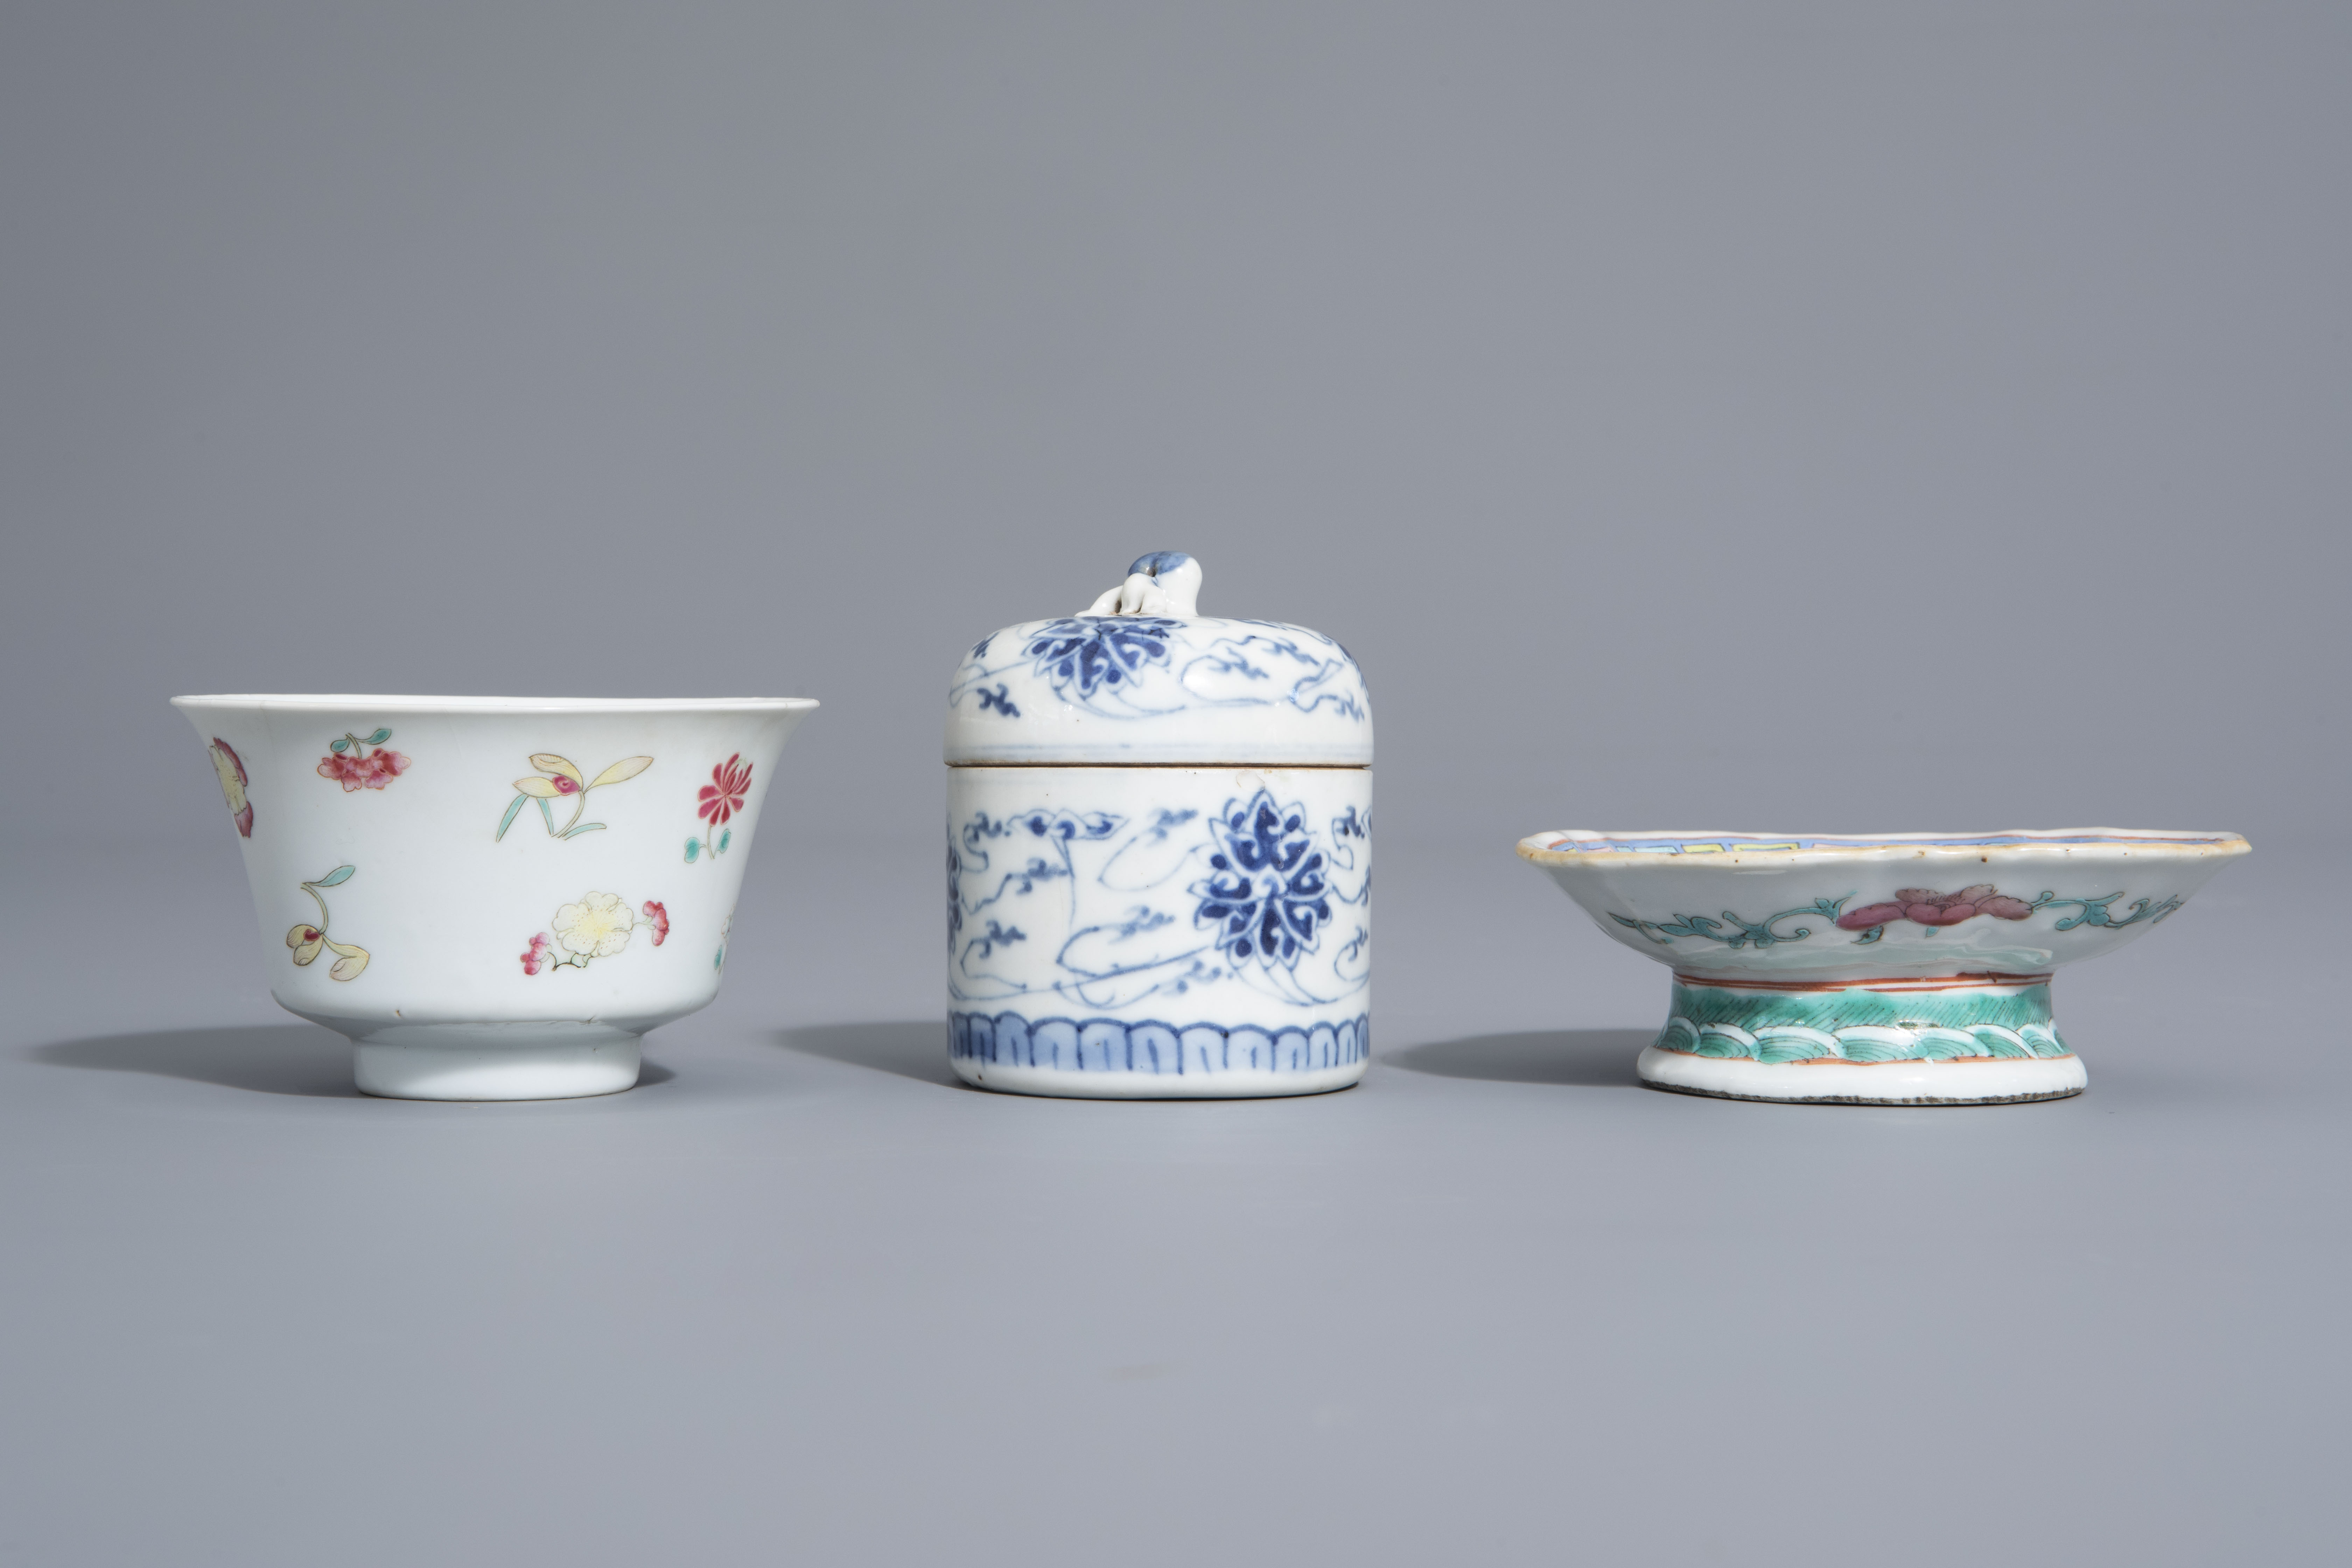 A varied collection of Chinese blue and white and famille rose porcelain, 19th/20th C. - Image 11 of 15